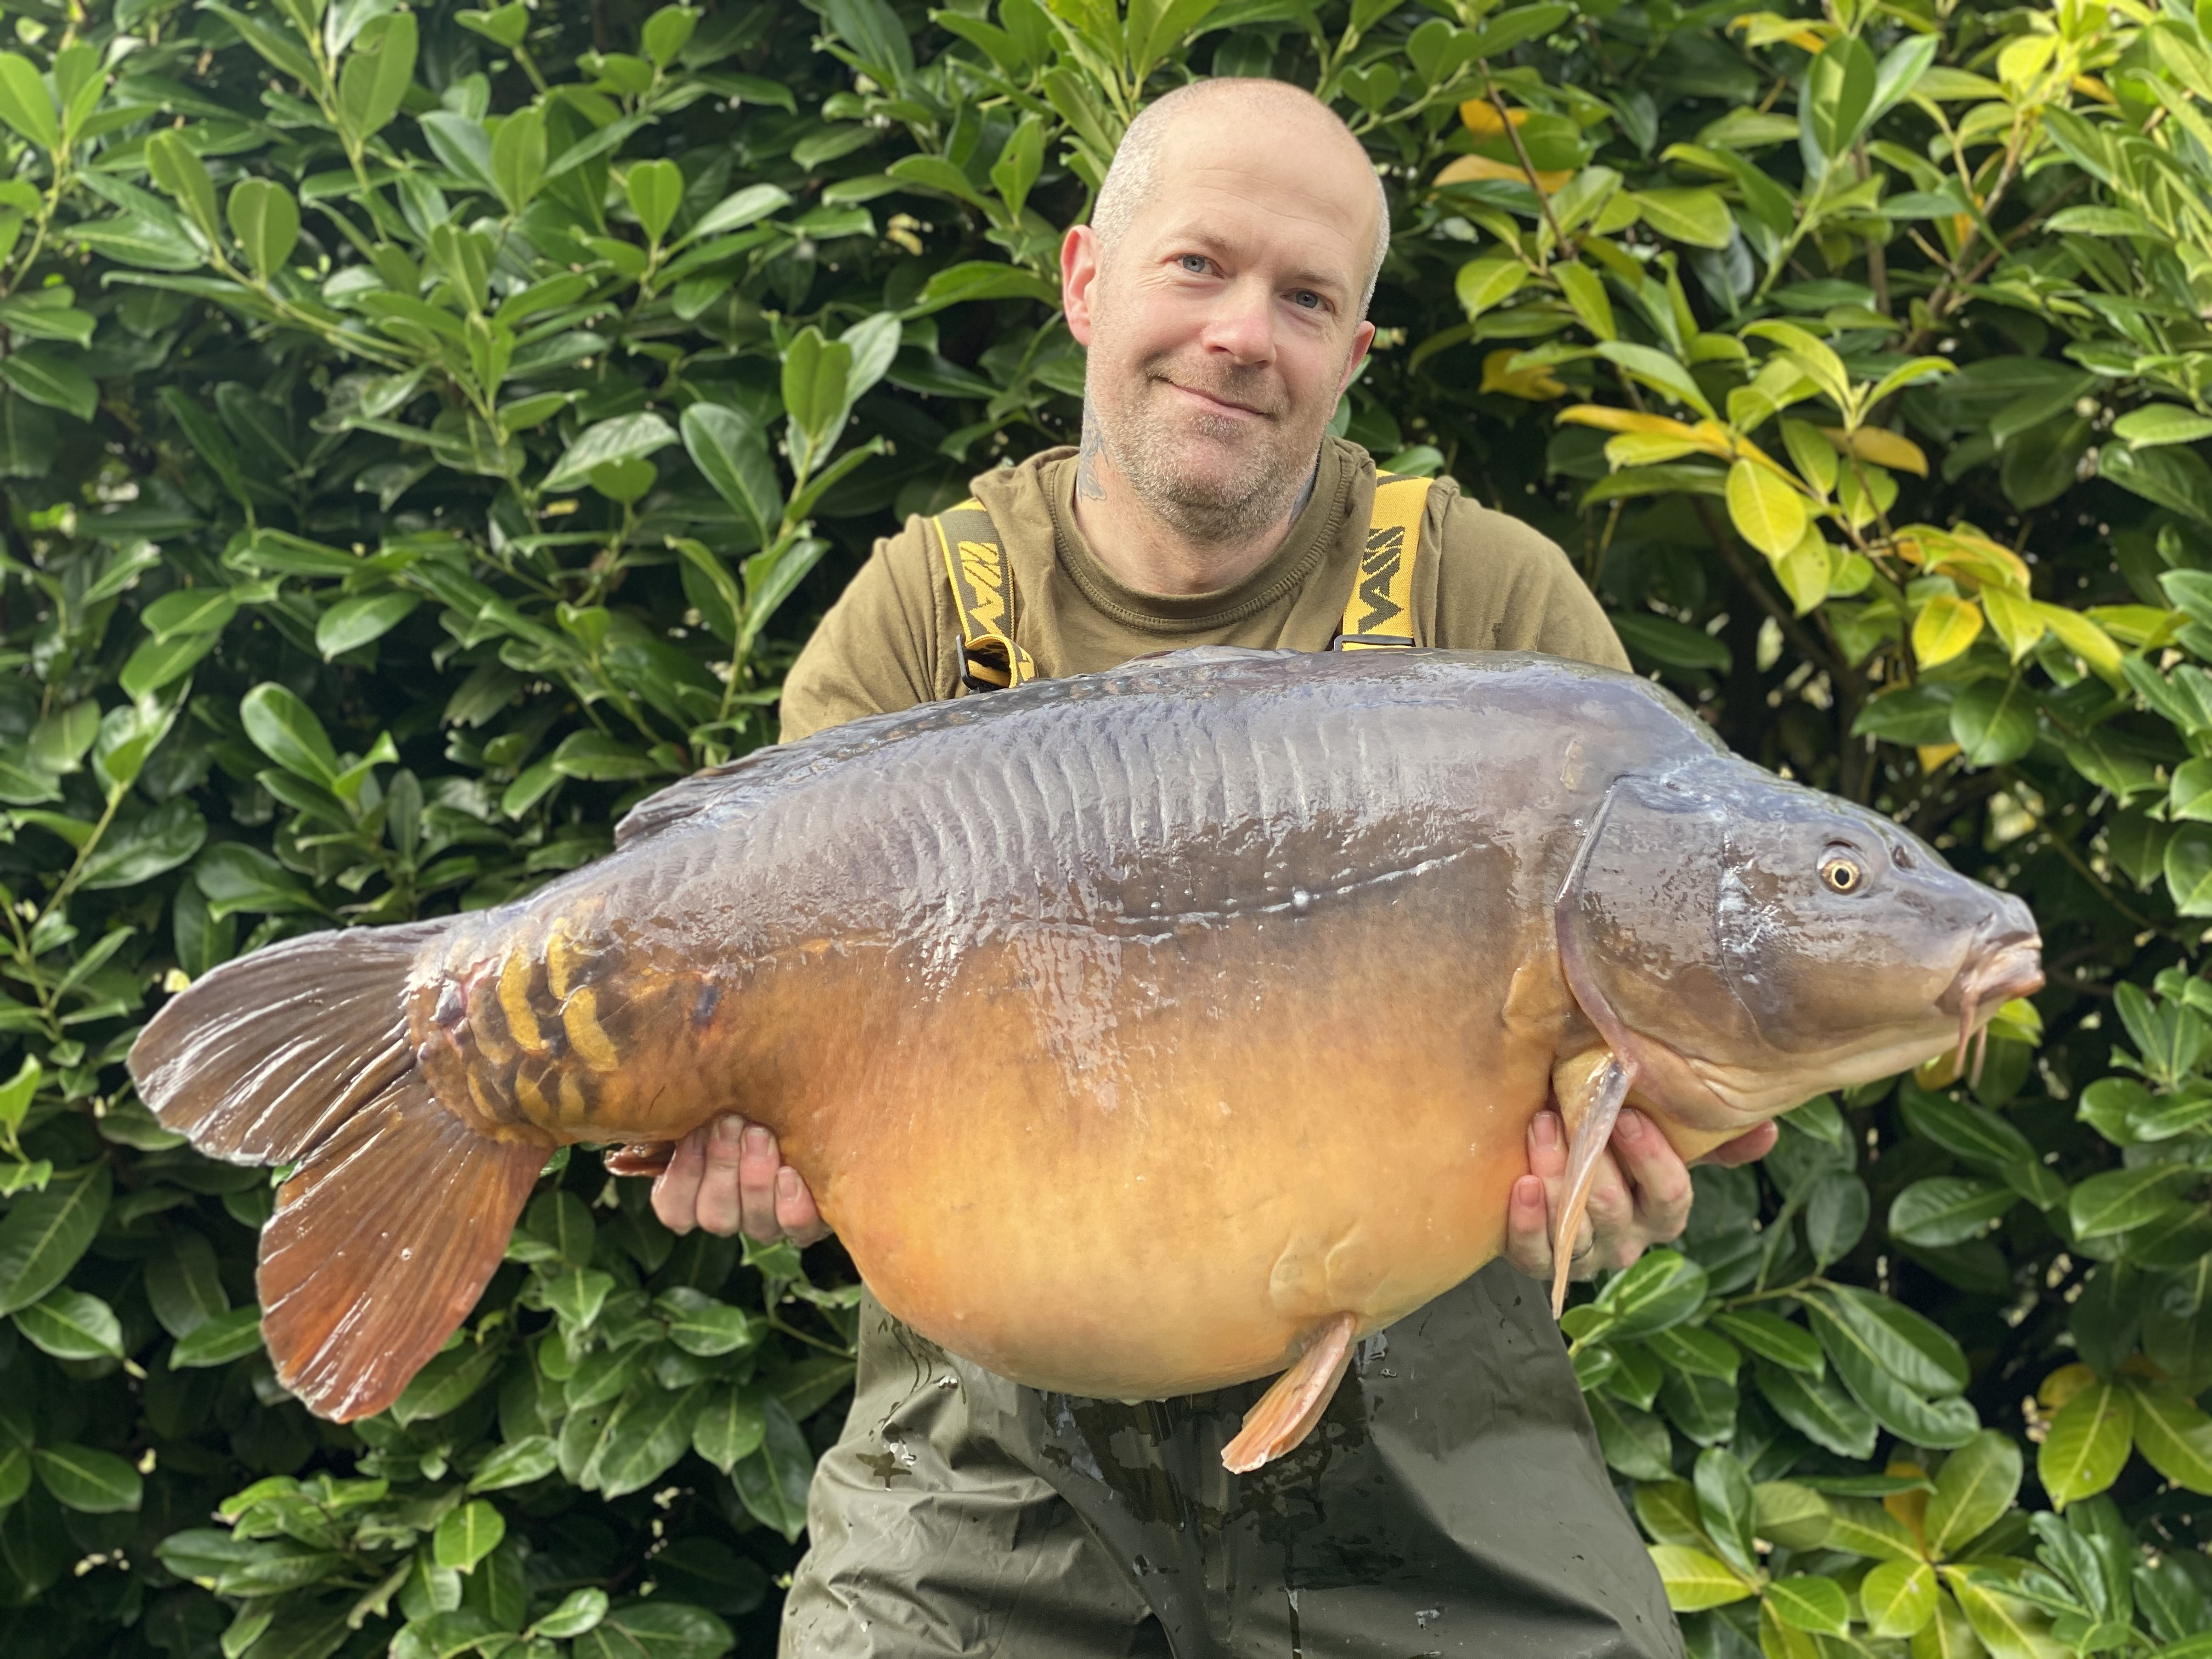 52lb 02oz 'Richie' - Current Lake Record  caught on